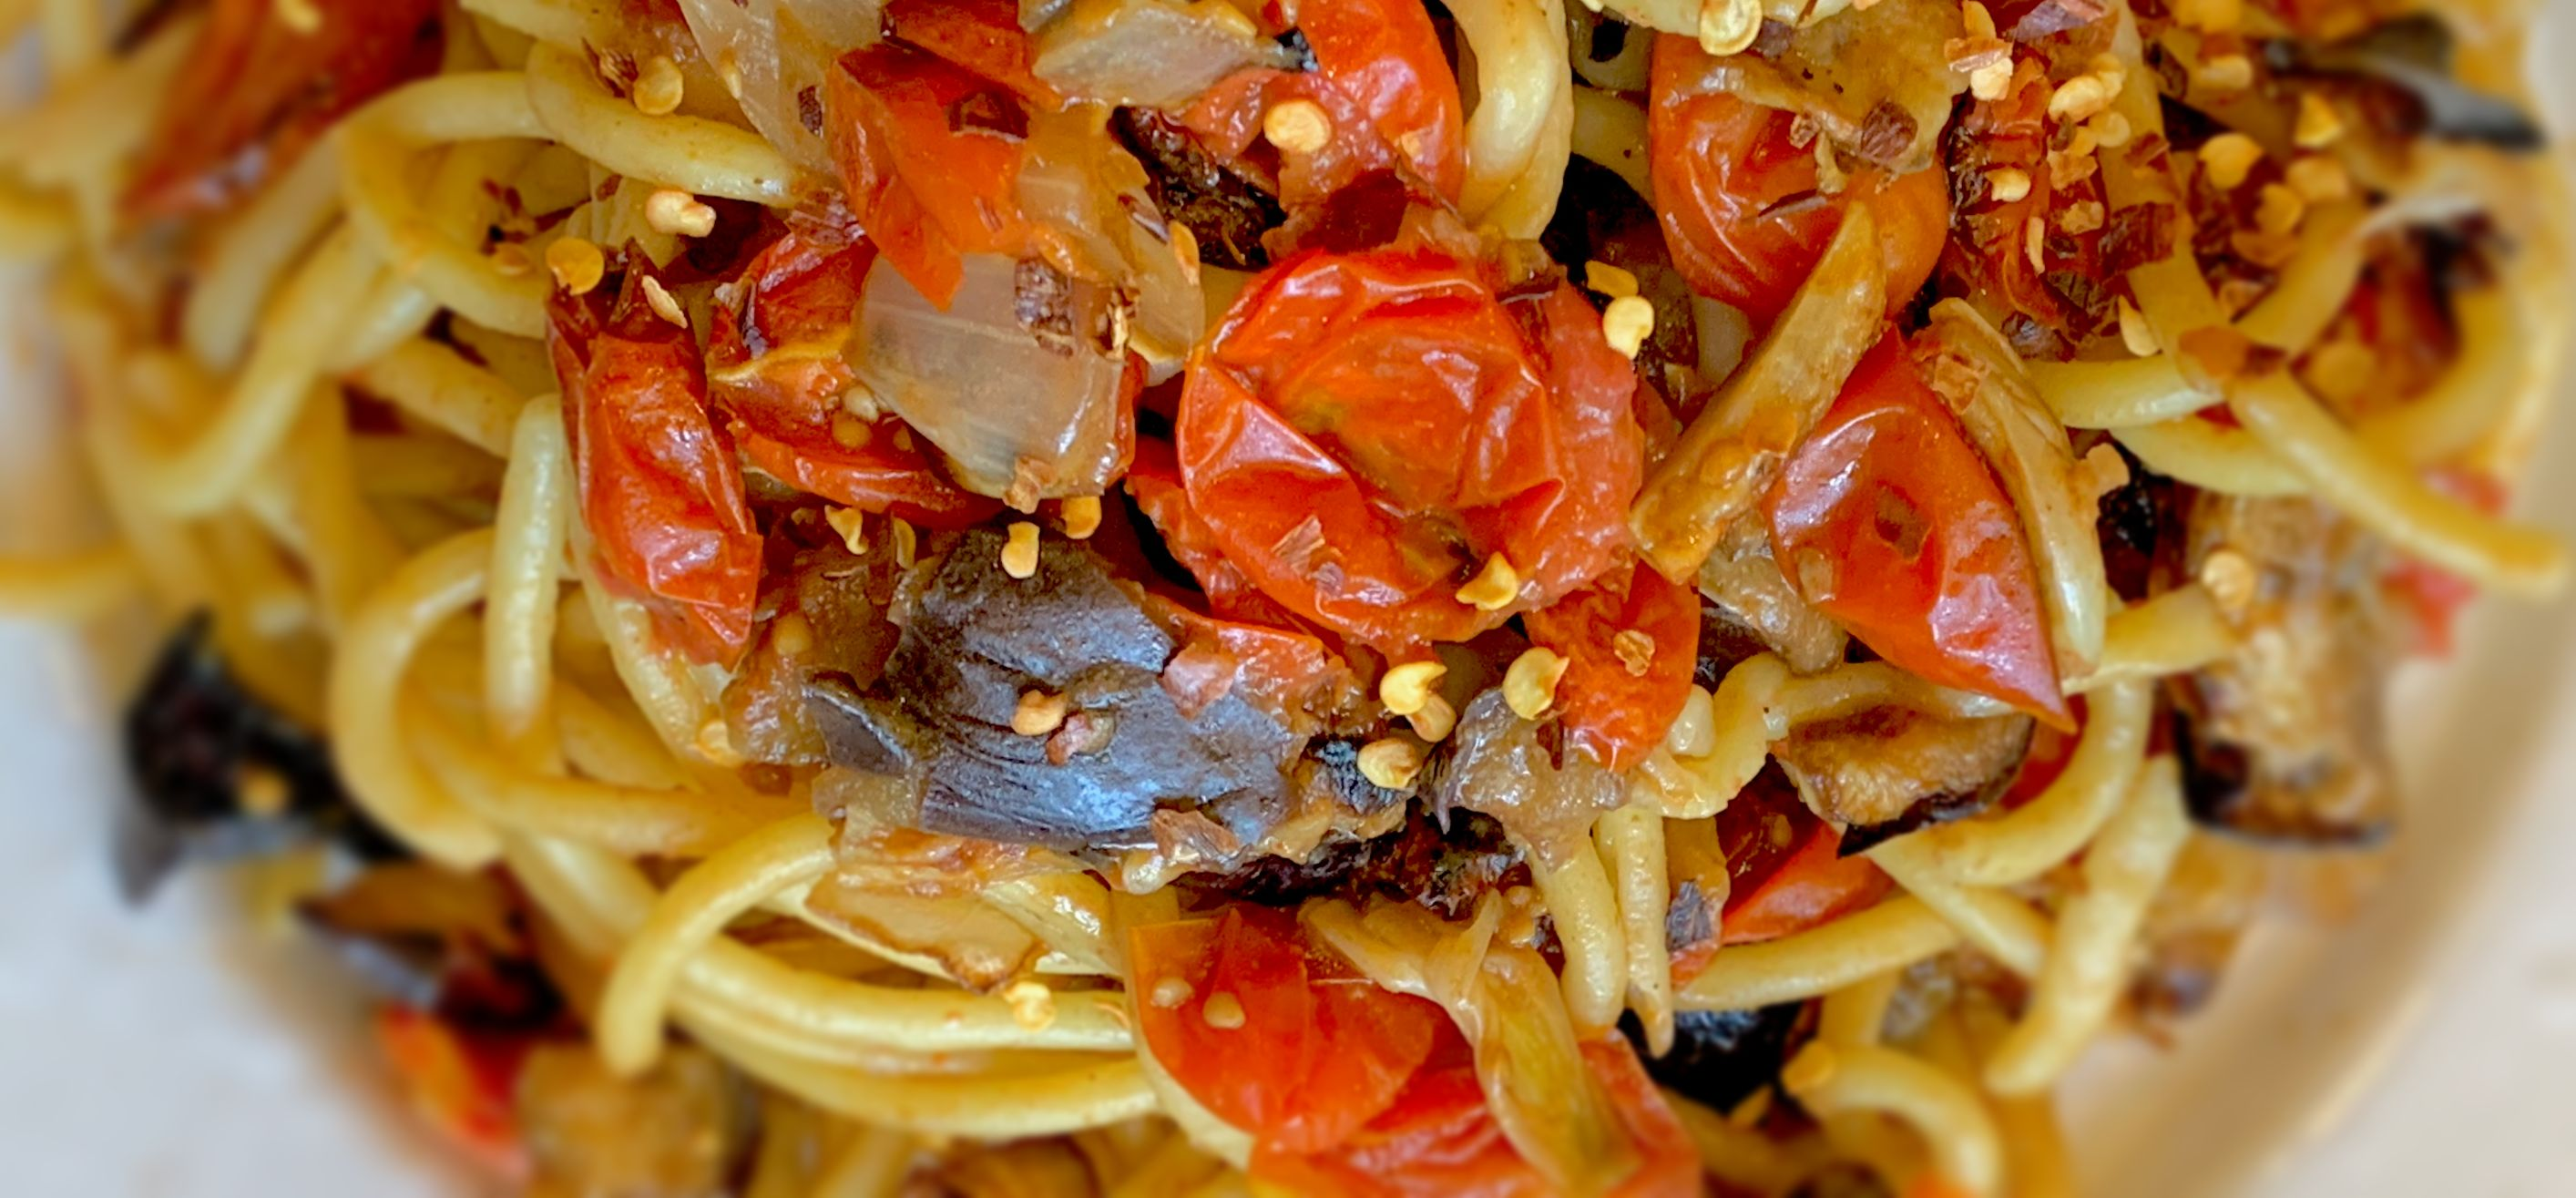 Slow-Roasted Tomato and Eggplant Bucatini Pasta